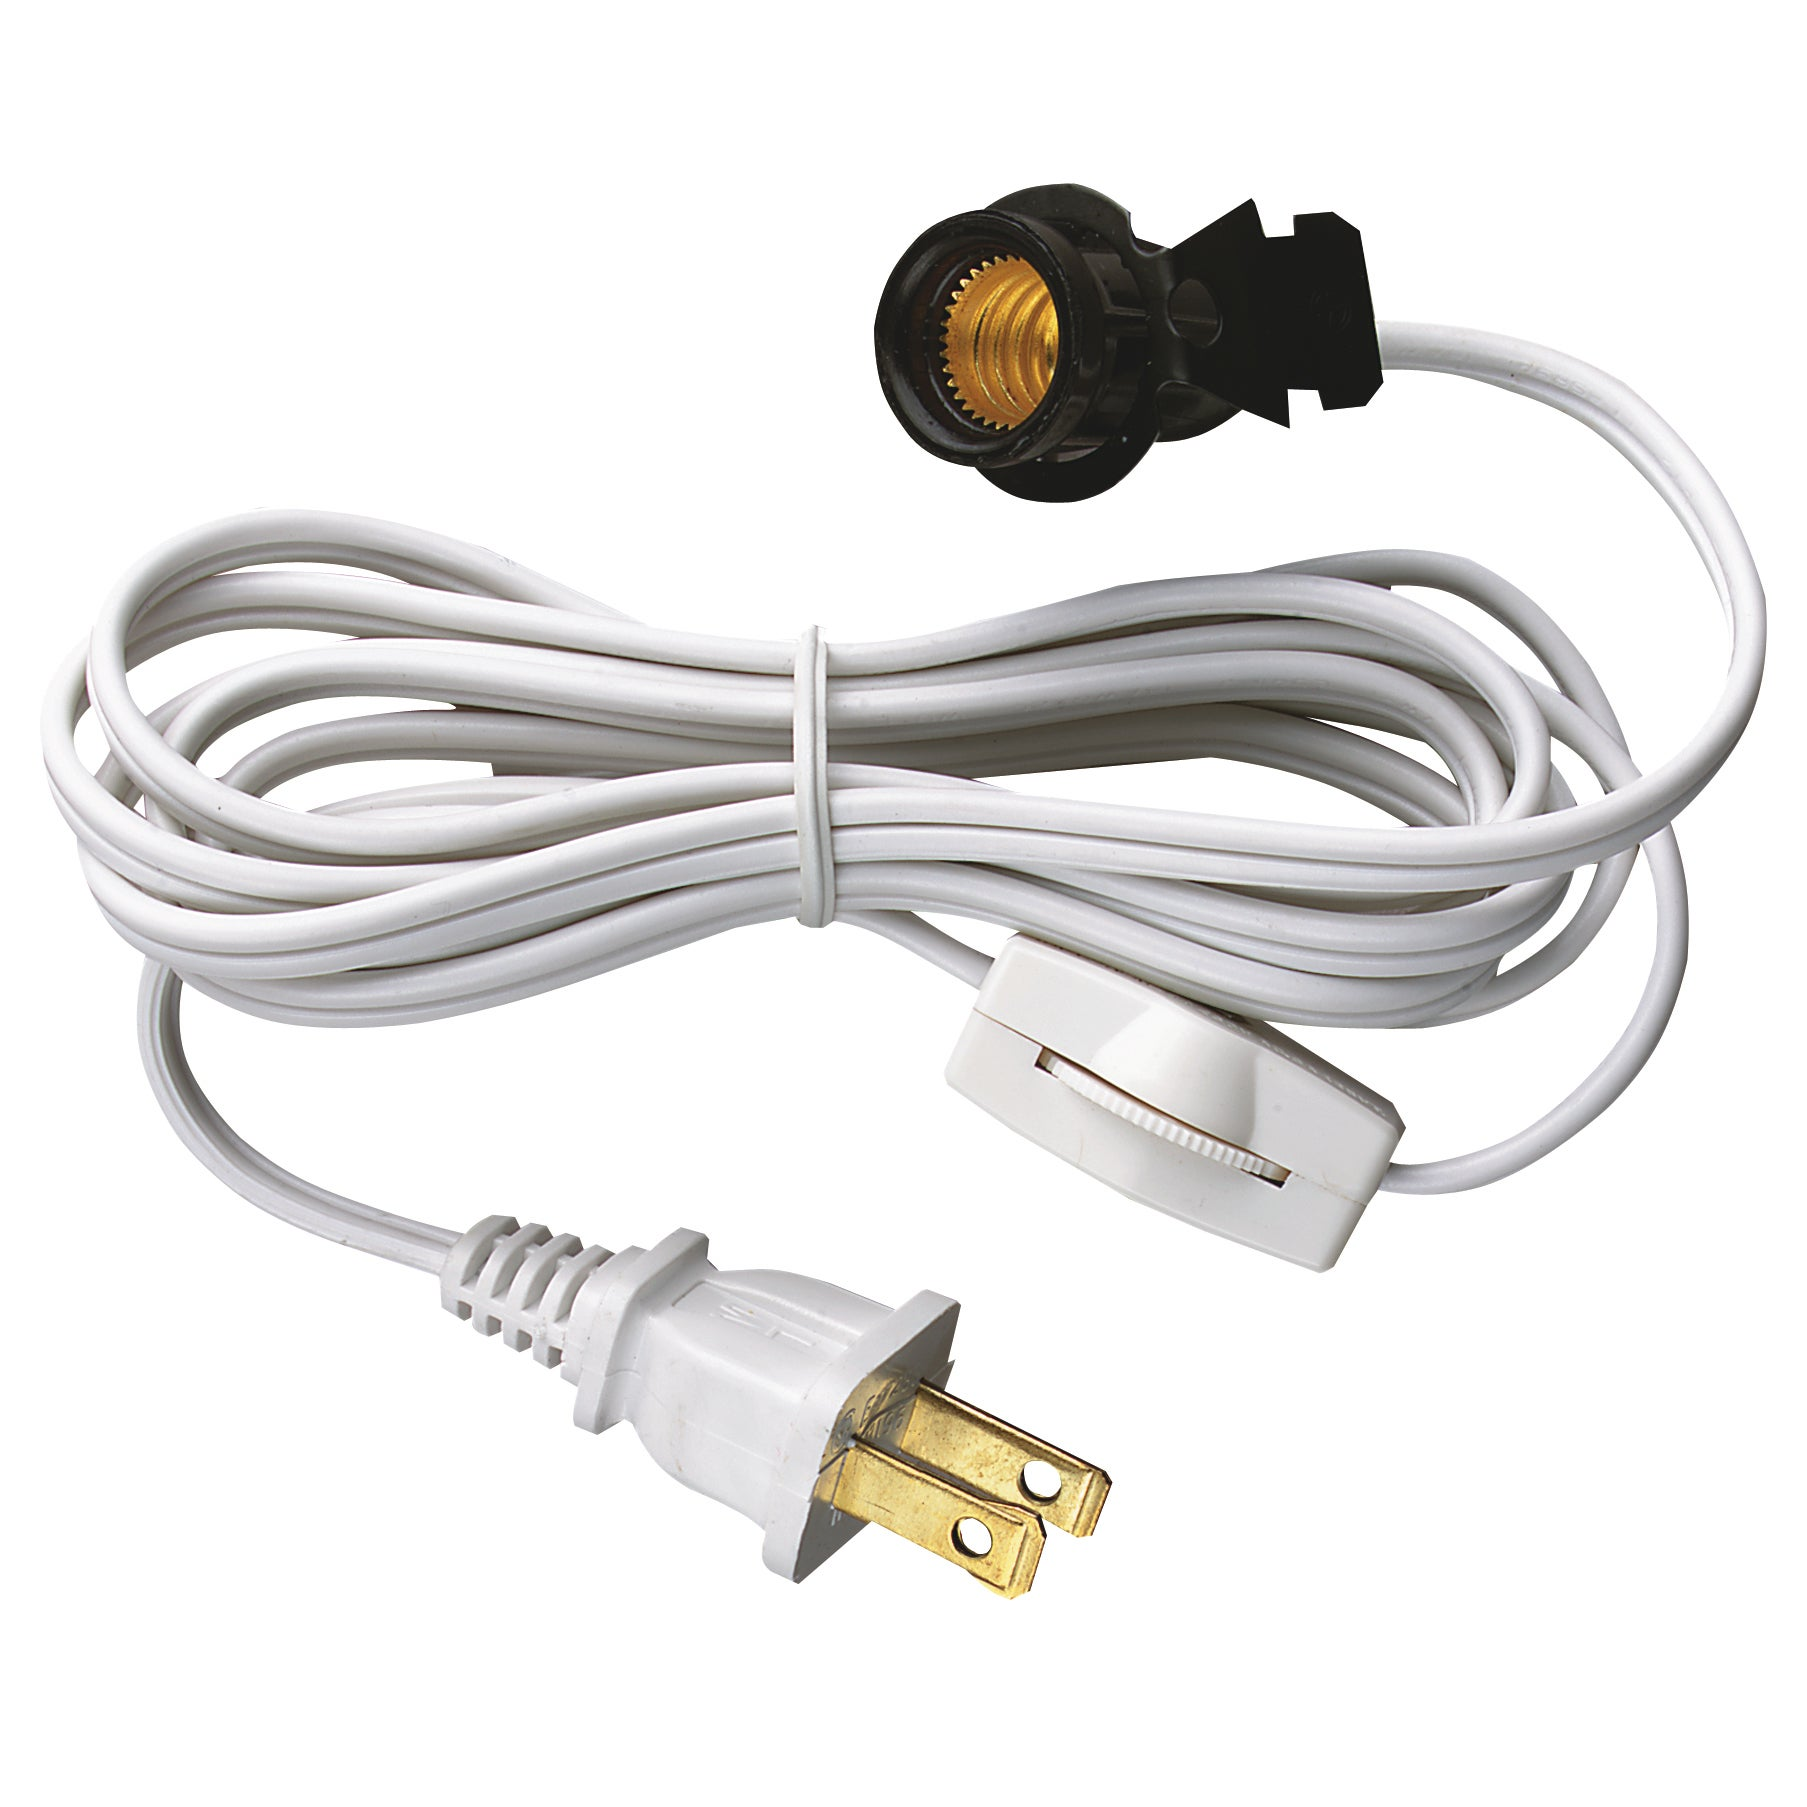 Shop Westinghouse 7010800 6 White Cord Set With Pigtail Base Wiring Technique Switch Free Shipping On Orders Over 45 11657369